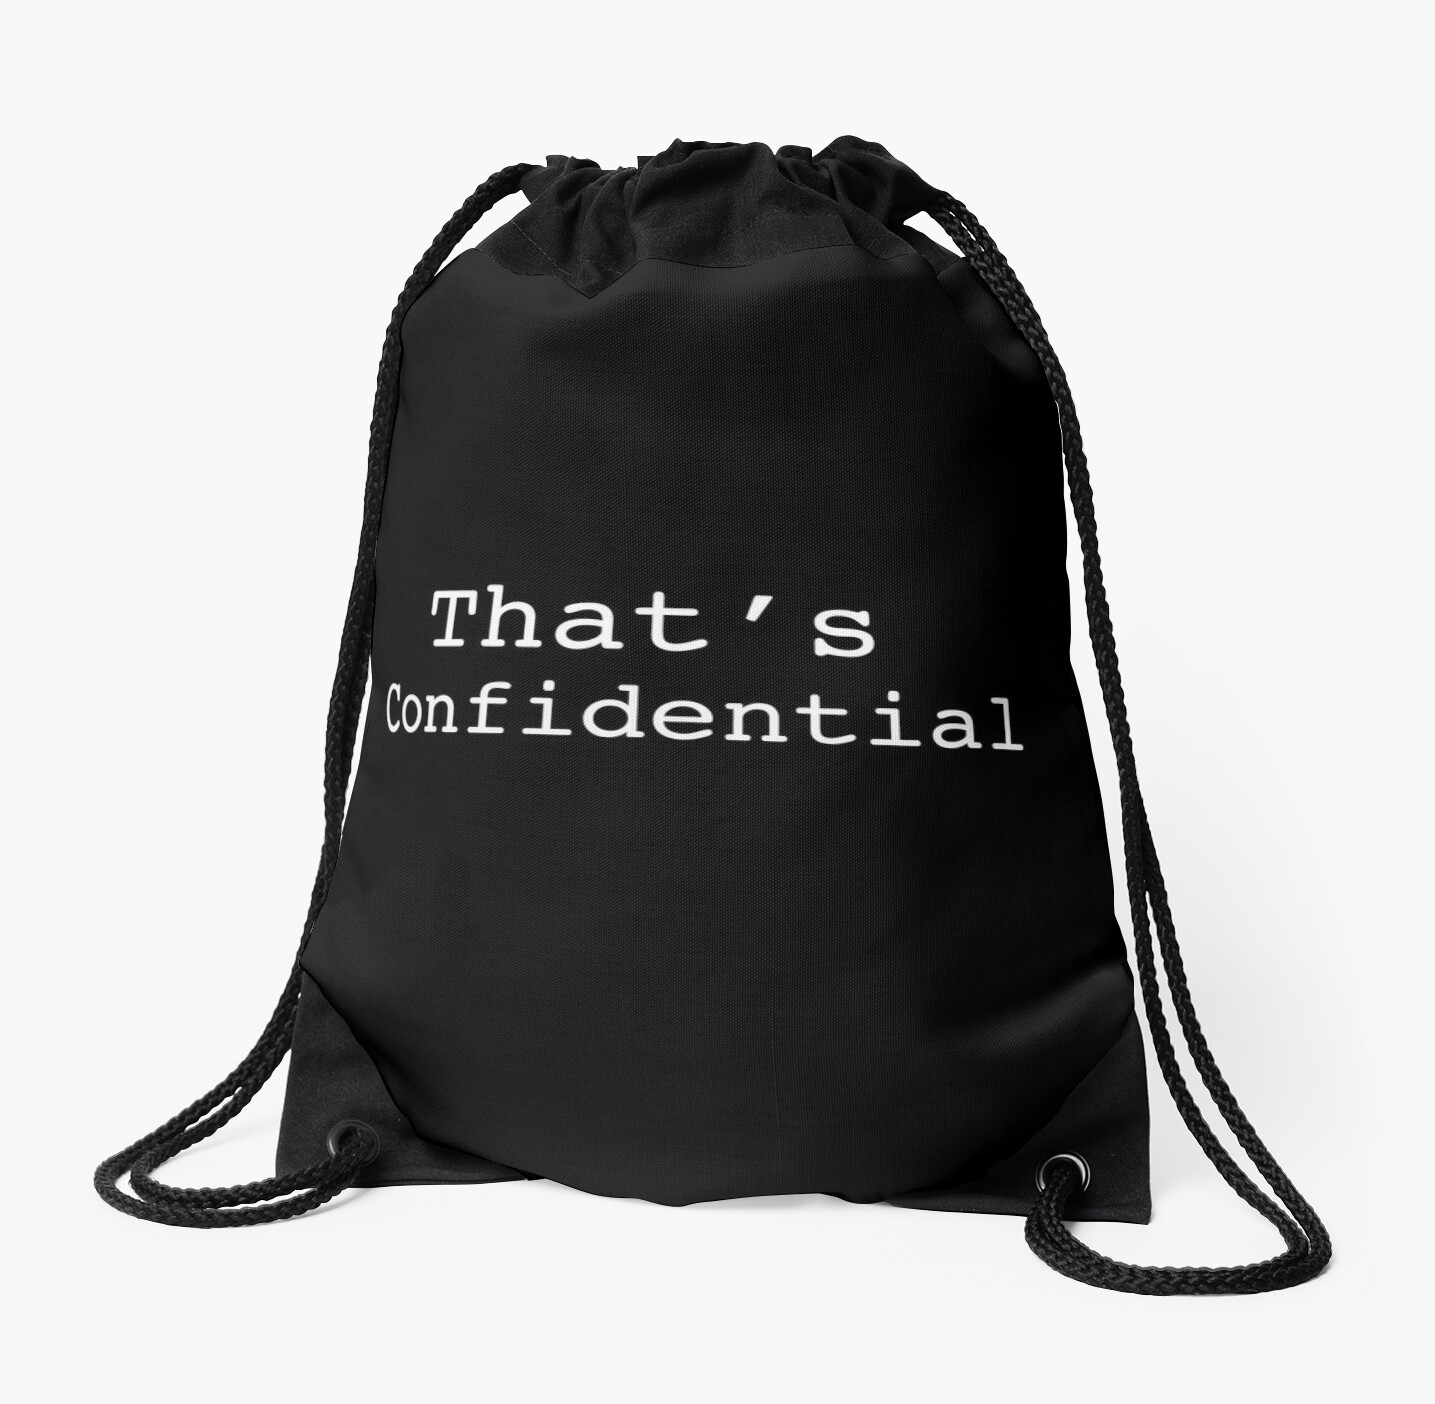 Thats Confidential by ATJones